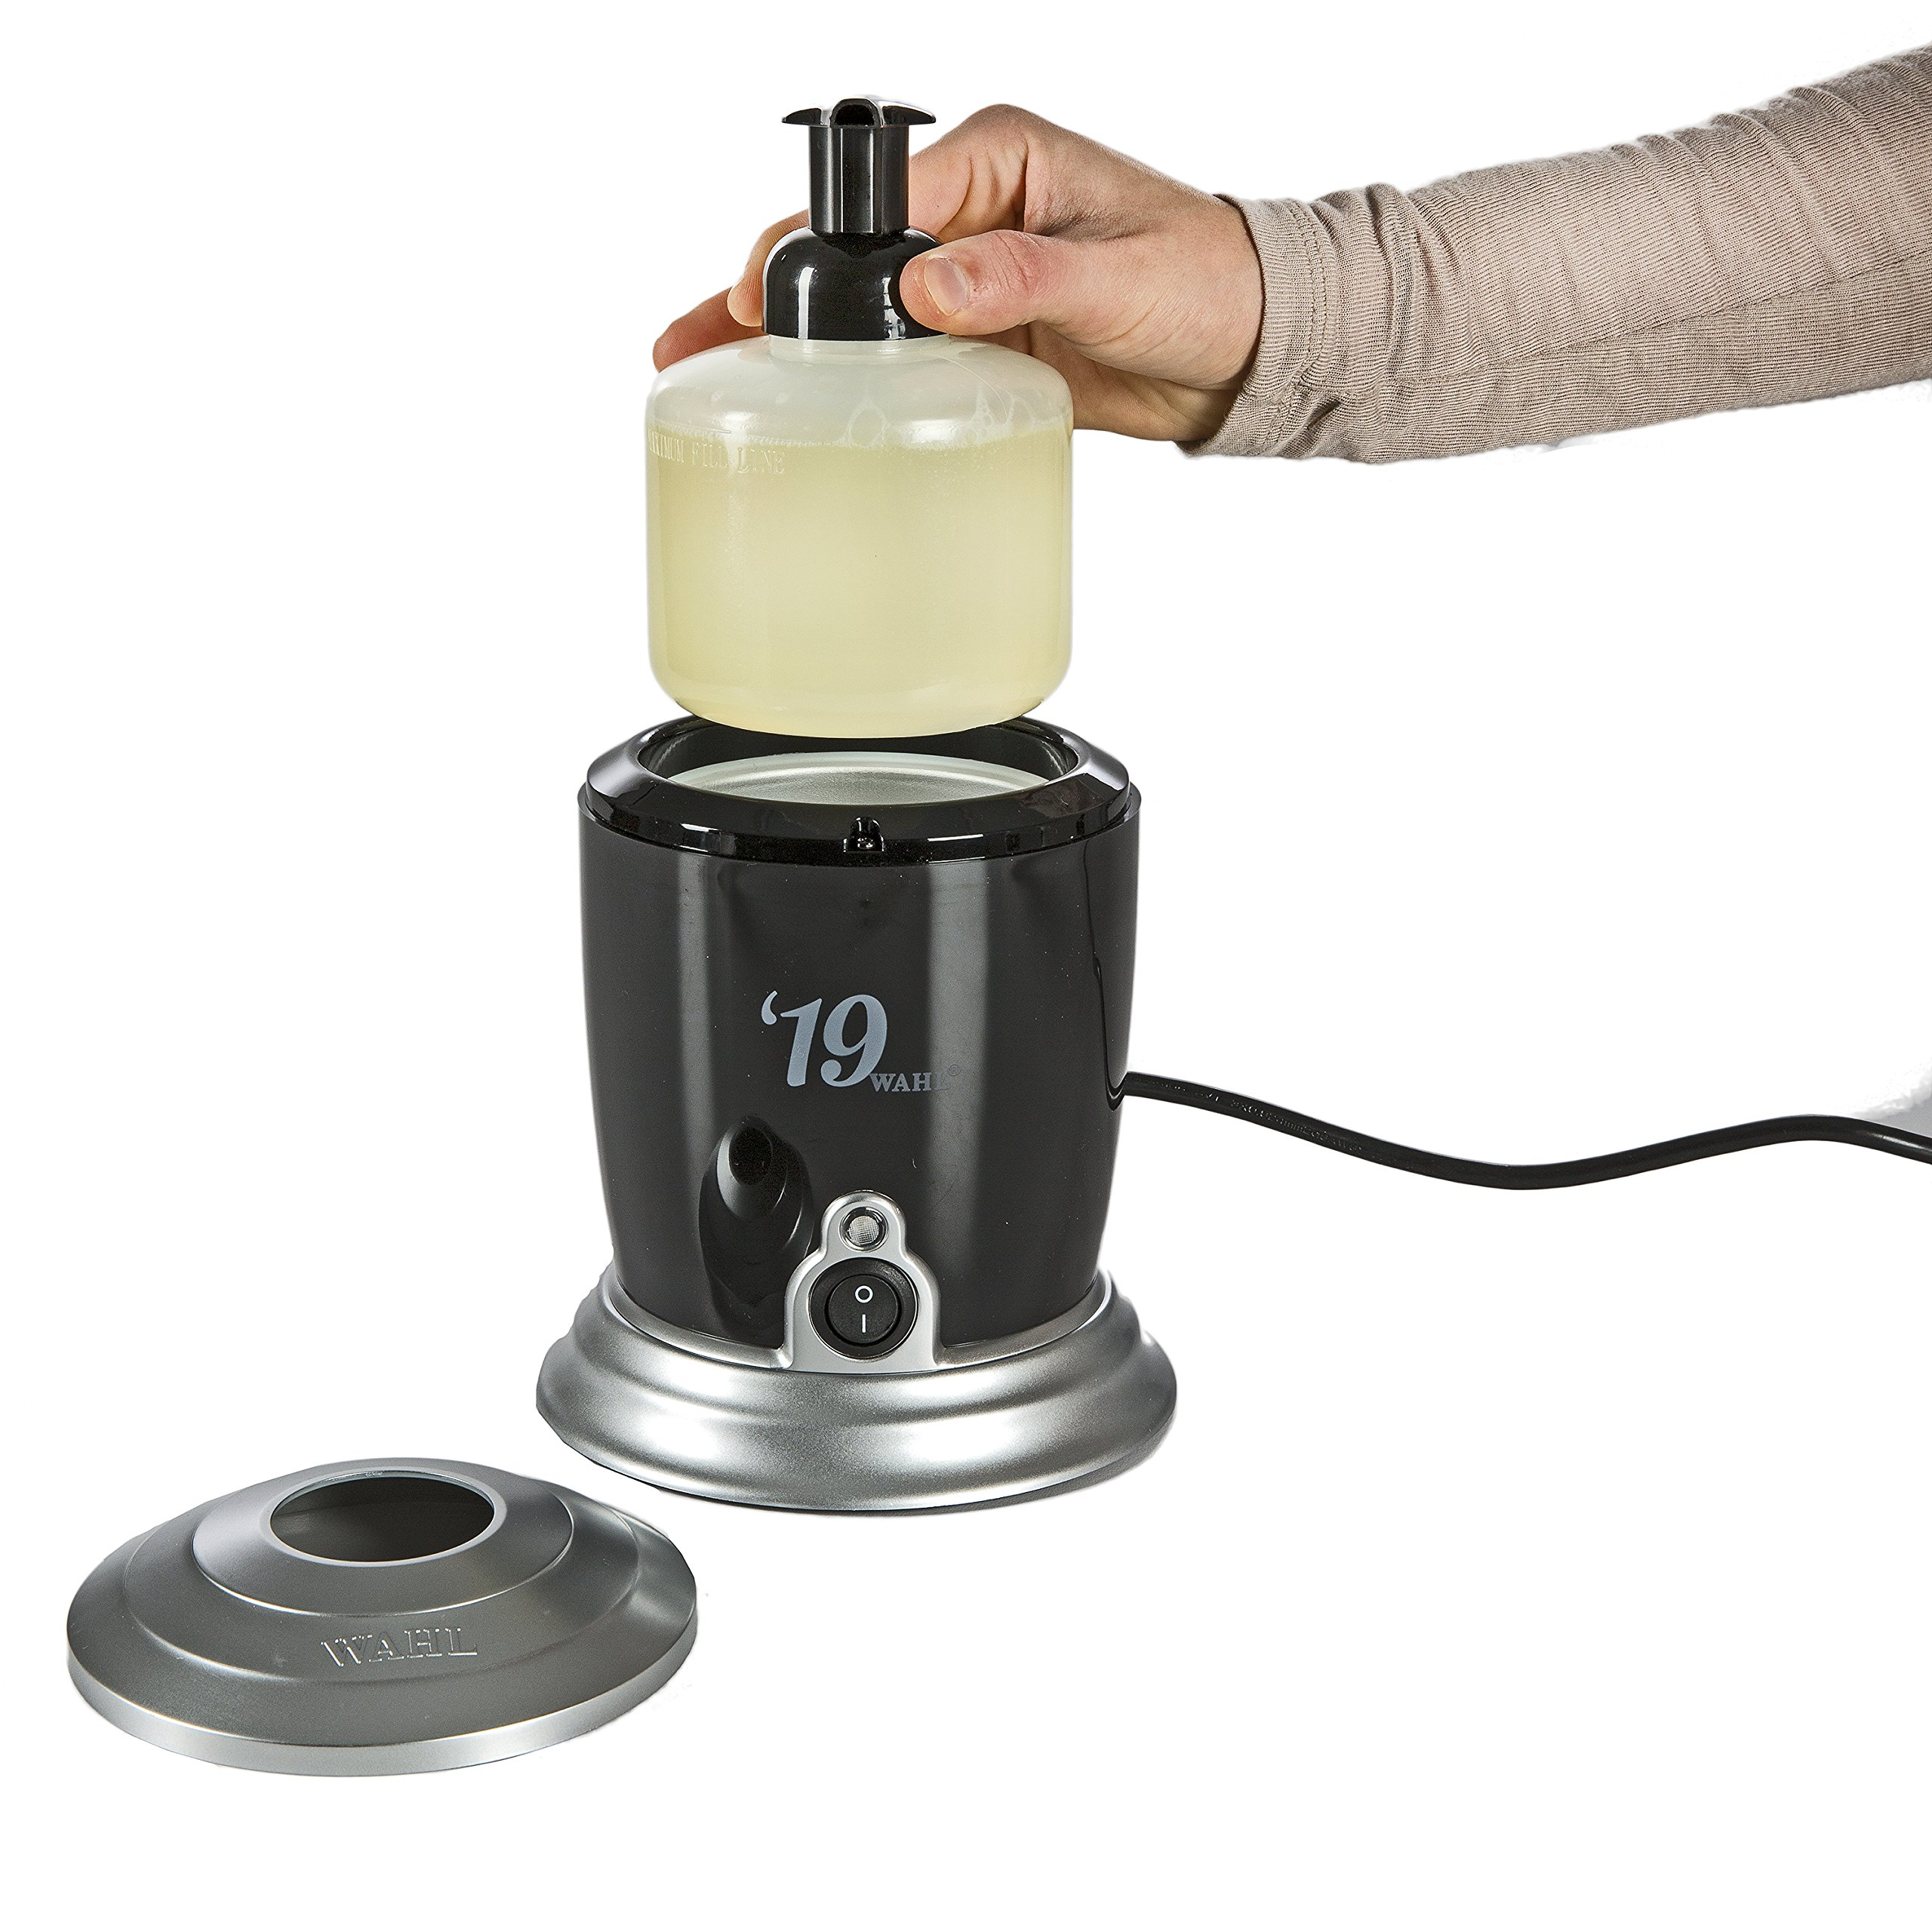 Wahl Professional '19 Hot Lather Machine #68908 – Professional Barber Quality Dispenser with Internal Liquid Pump, Bottle, Additional Bonus Liquid Pump, and 12 oz. Bottle of Pre-Mixed Liquid Lather by Wahl Professional (Image #4)